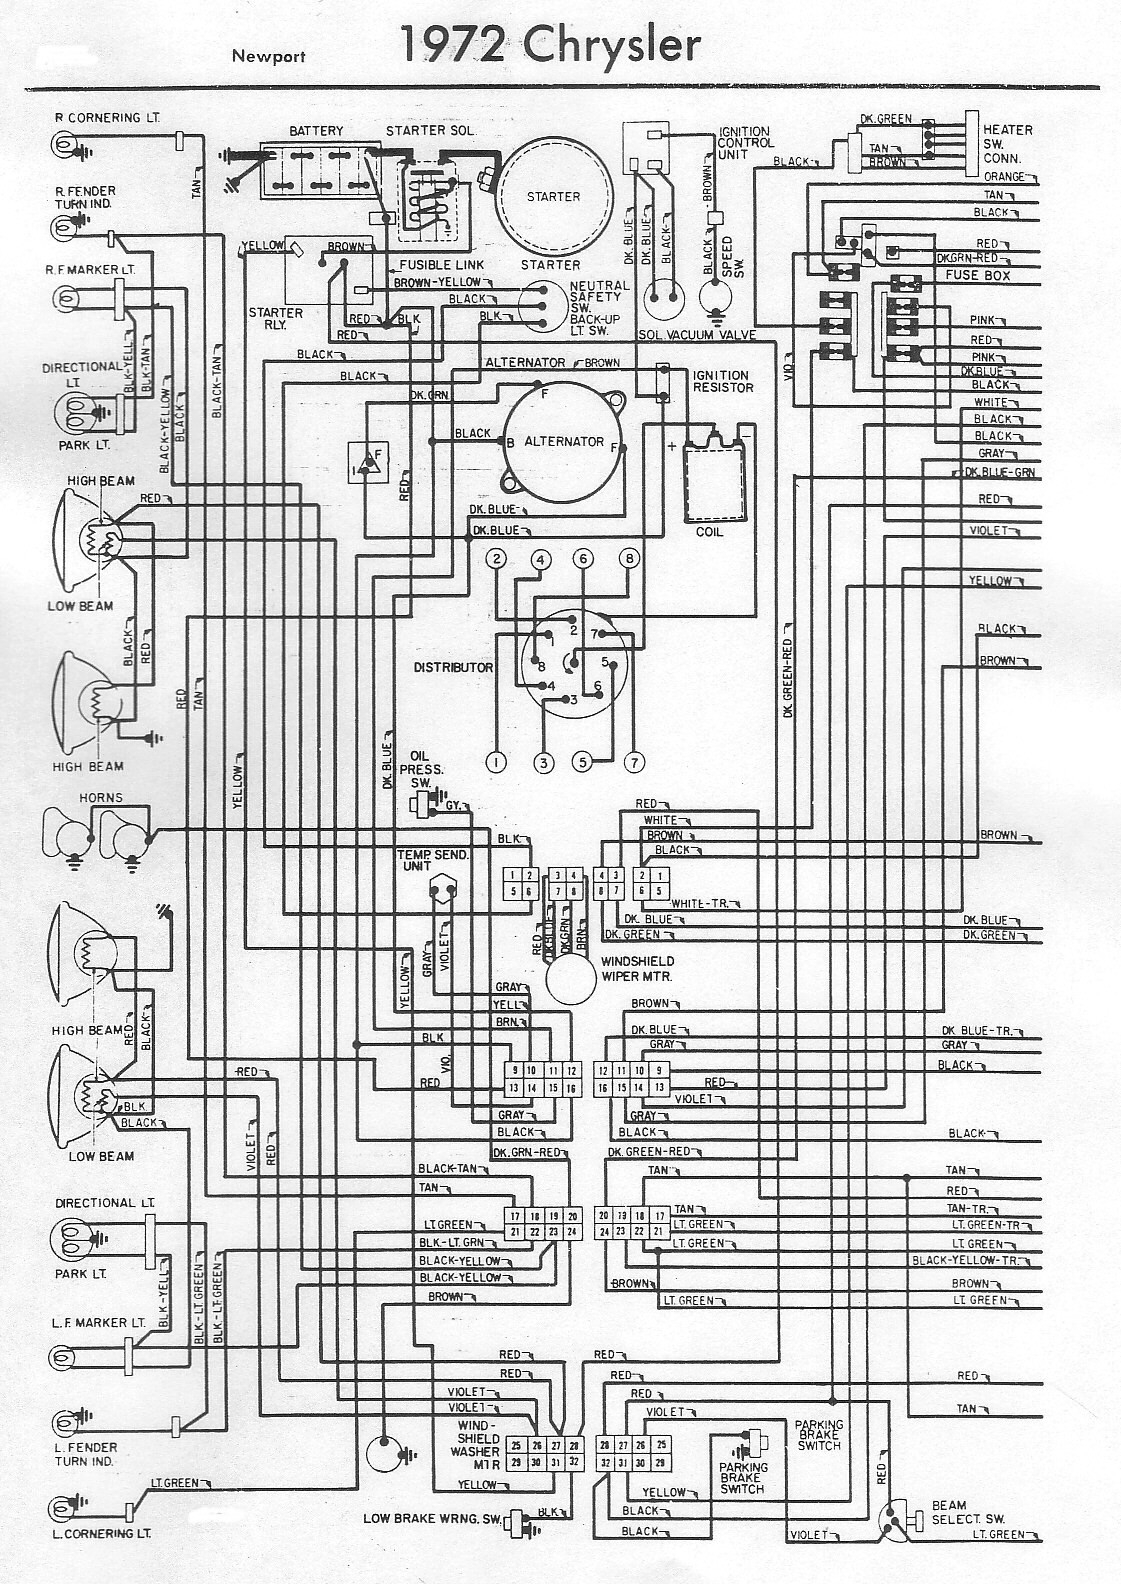 1966 chrysler 300 engine wiring diagram 1966 chrysler newport wiring diagram wiring diagram data  1966 chrysler newport wiring diagram